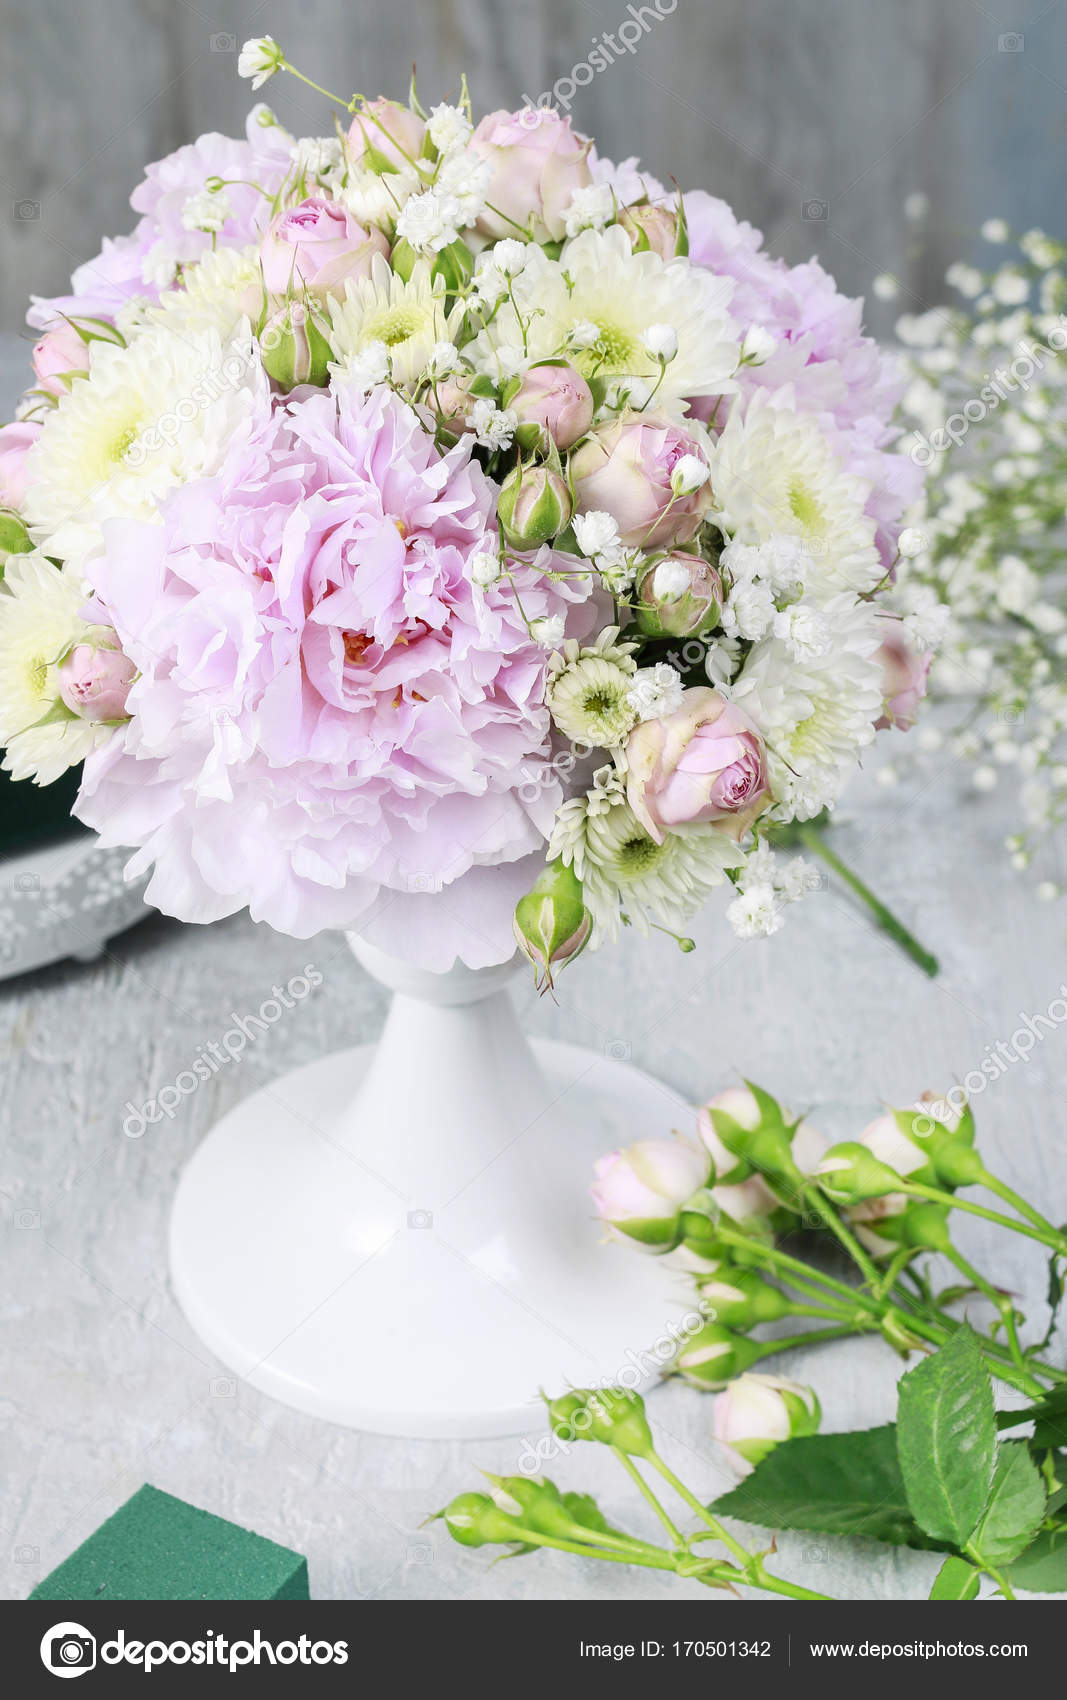 How to make wedding floral arrangement with peonies, roses, — Stock ...